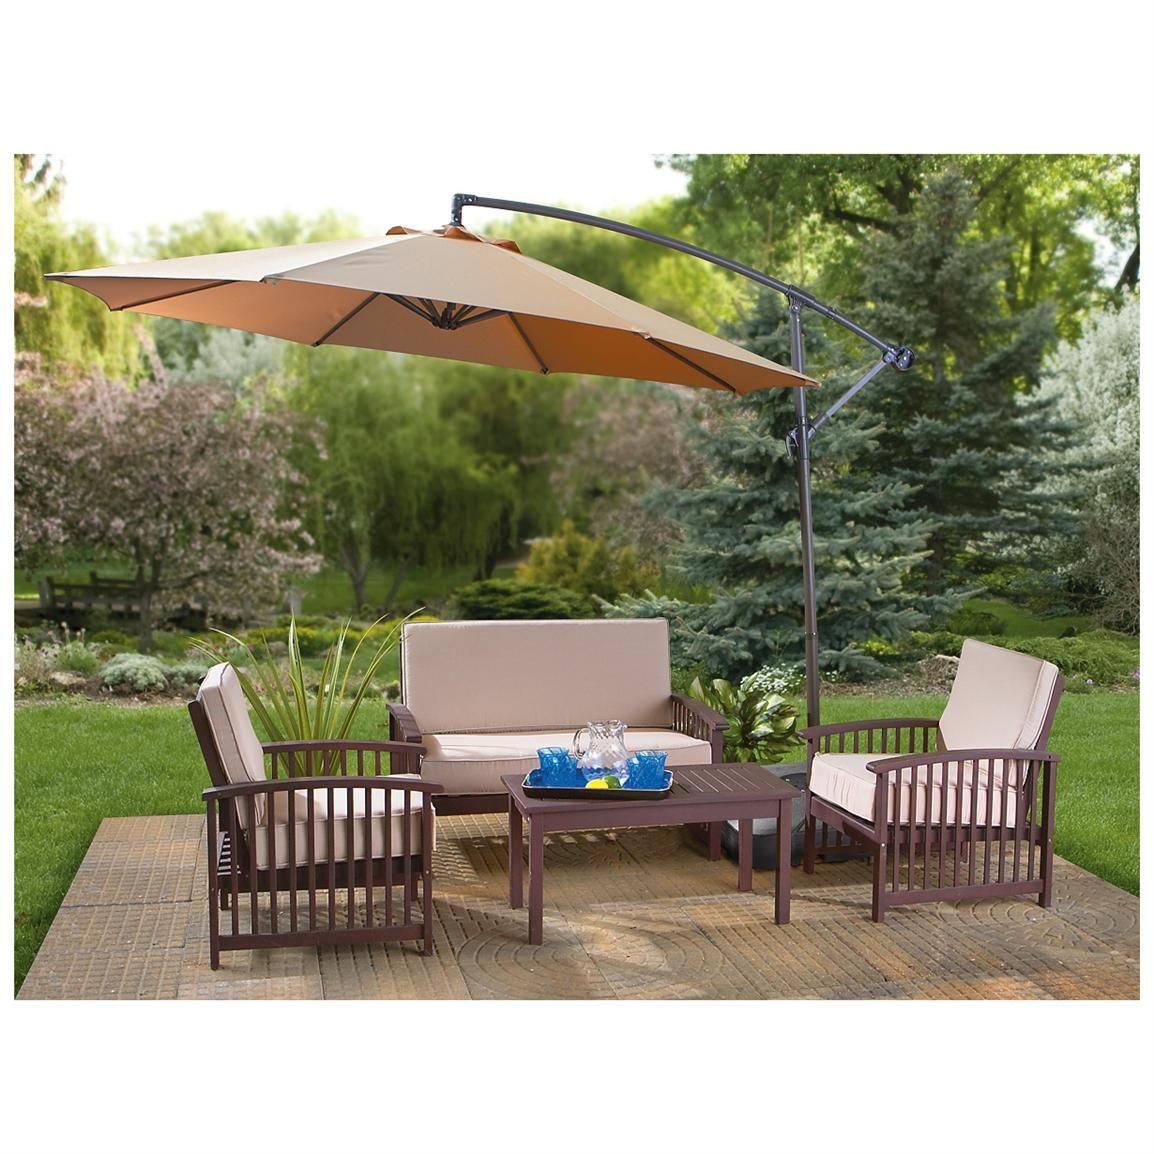 Castlecreek 10 Foot Cantilever Umbrella Give Your Guests An